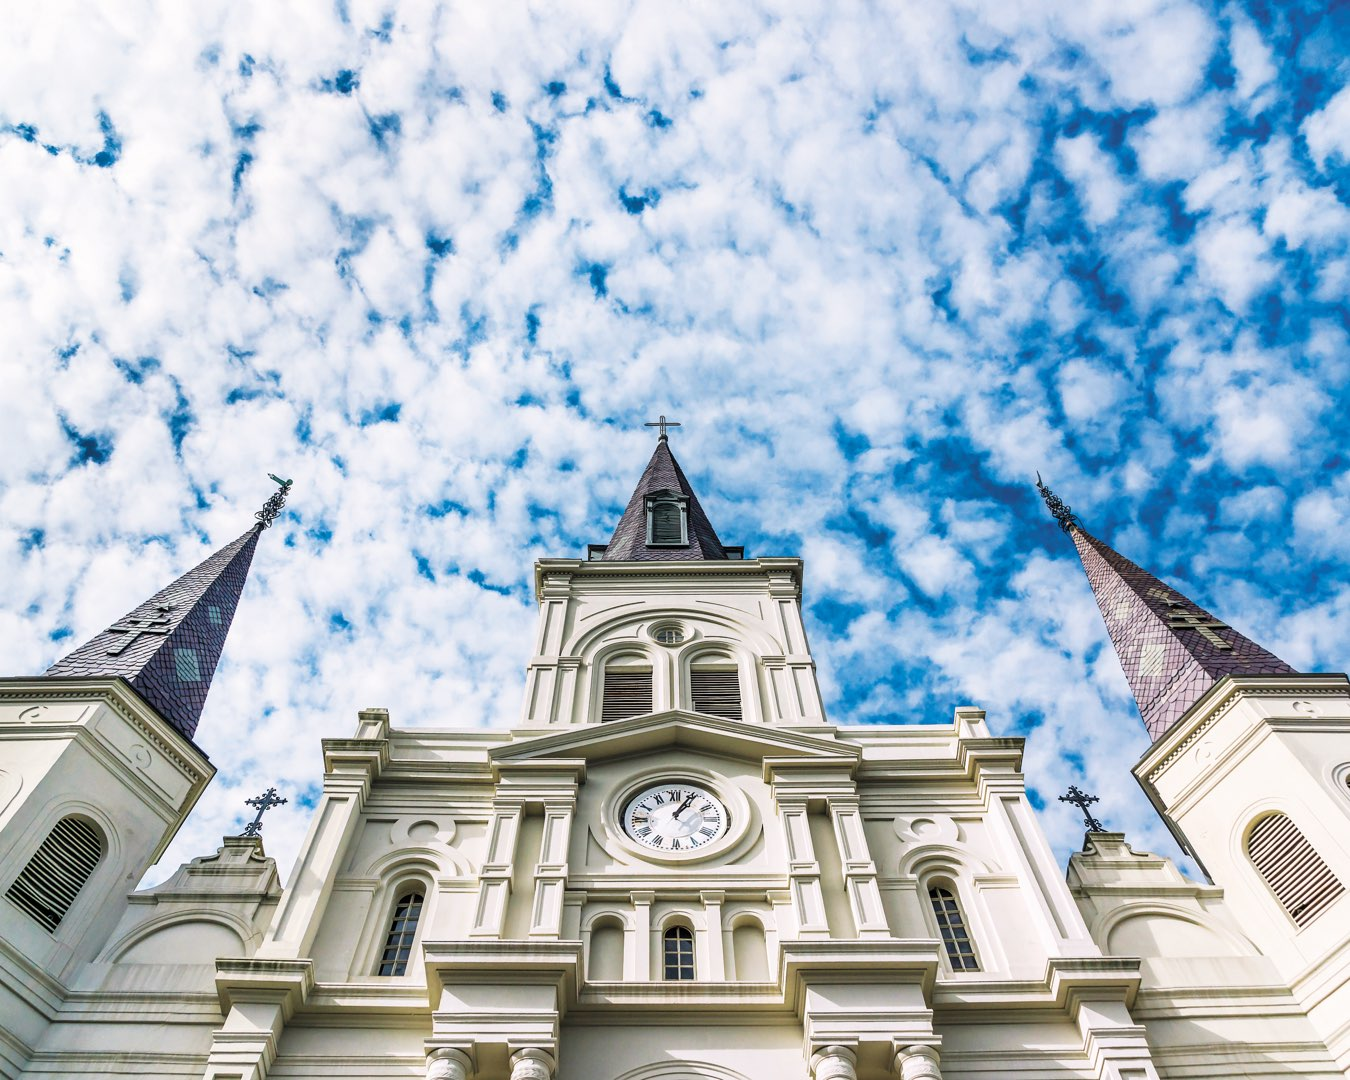 Close-up of the iconic clock tower of Saint Louis Cathedral in New Orleans, Louisiana against a bright blue sky